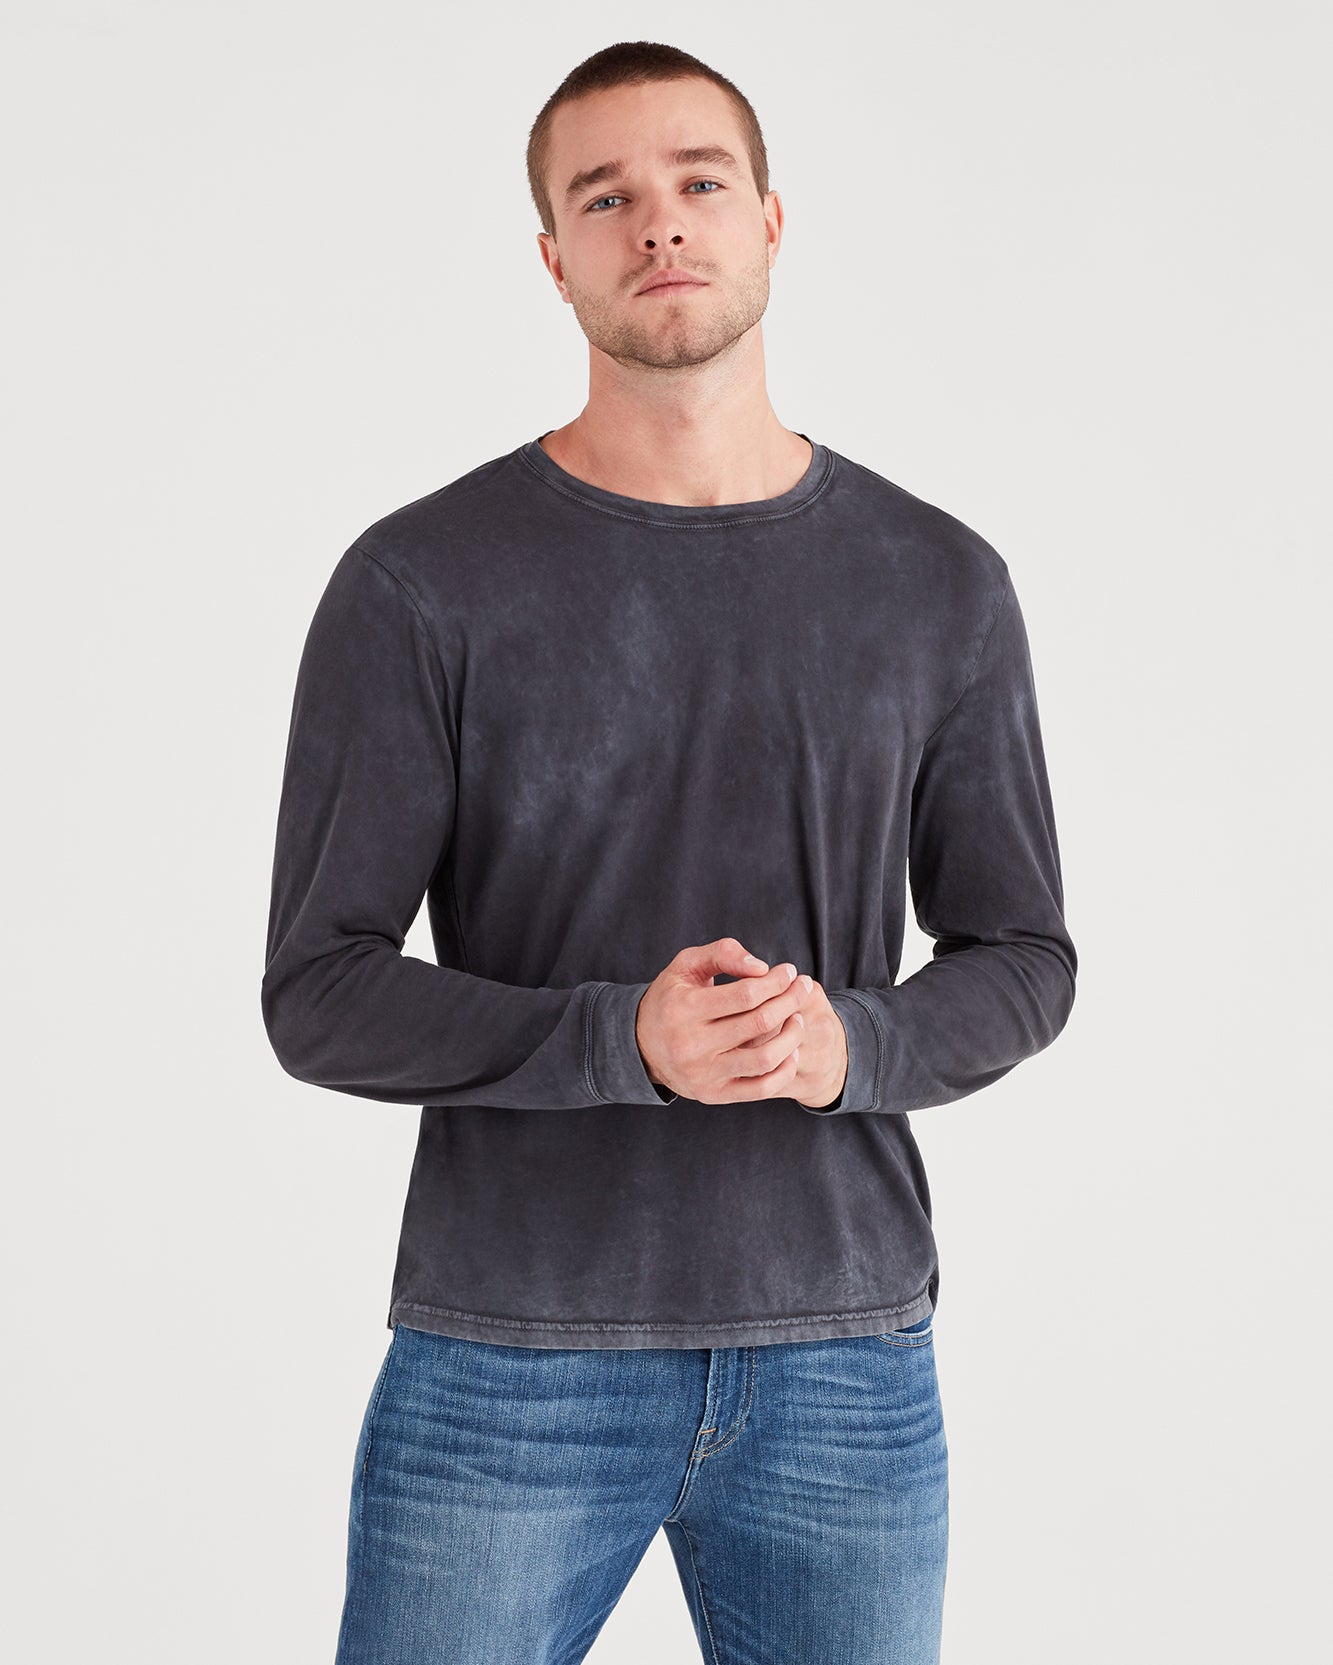 Image of Long Sleeve Washed Tee in Old Black